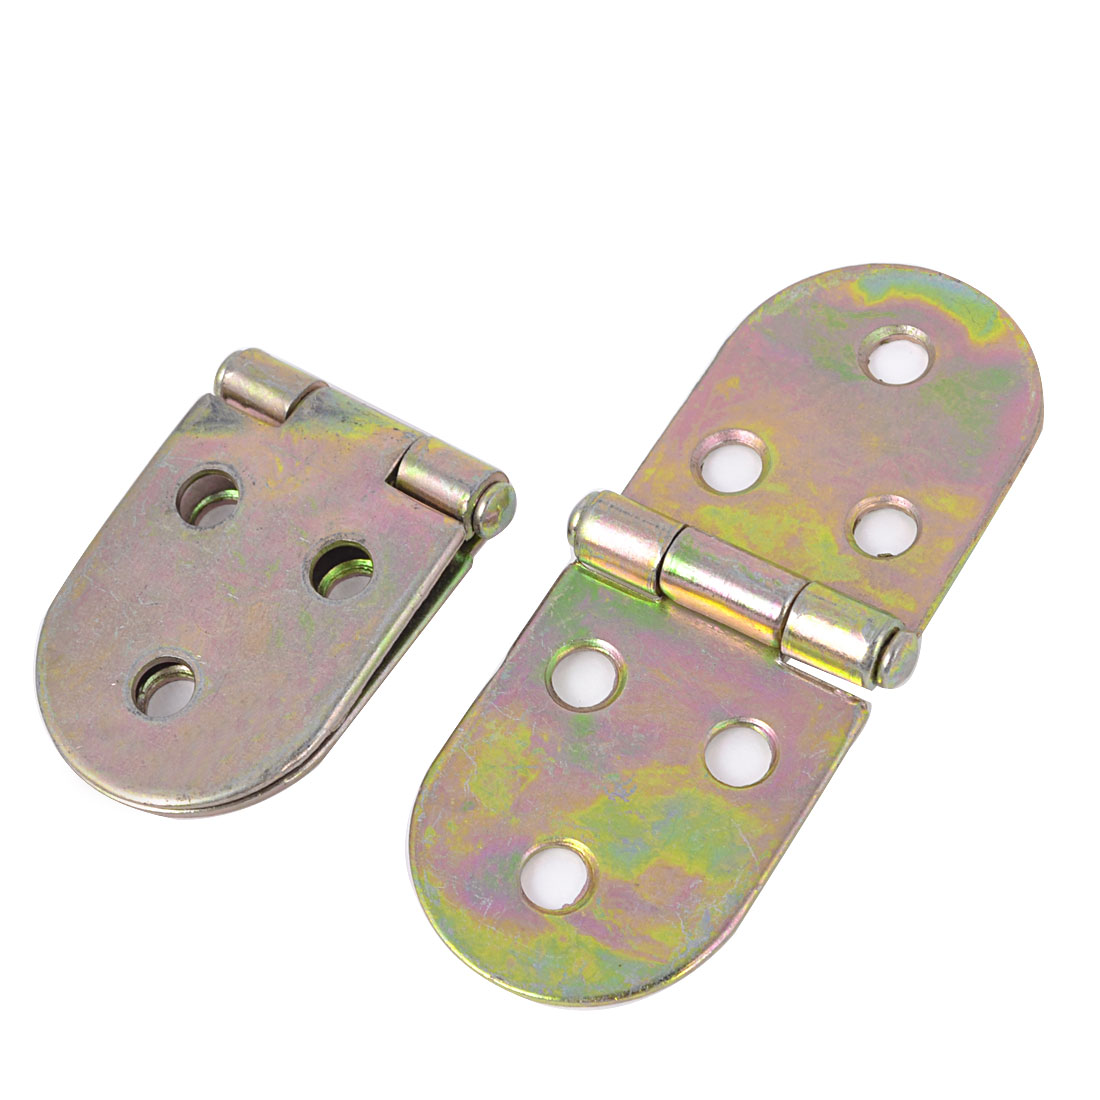 2Pcs Bronze Tone Metal Foldable Rotating Closet Cabinet Door Hinges 1.3""